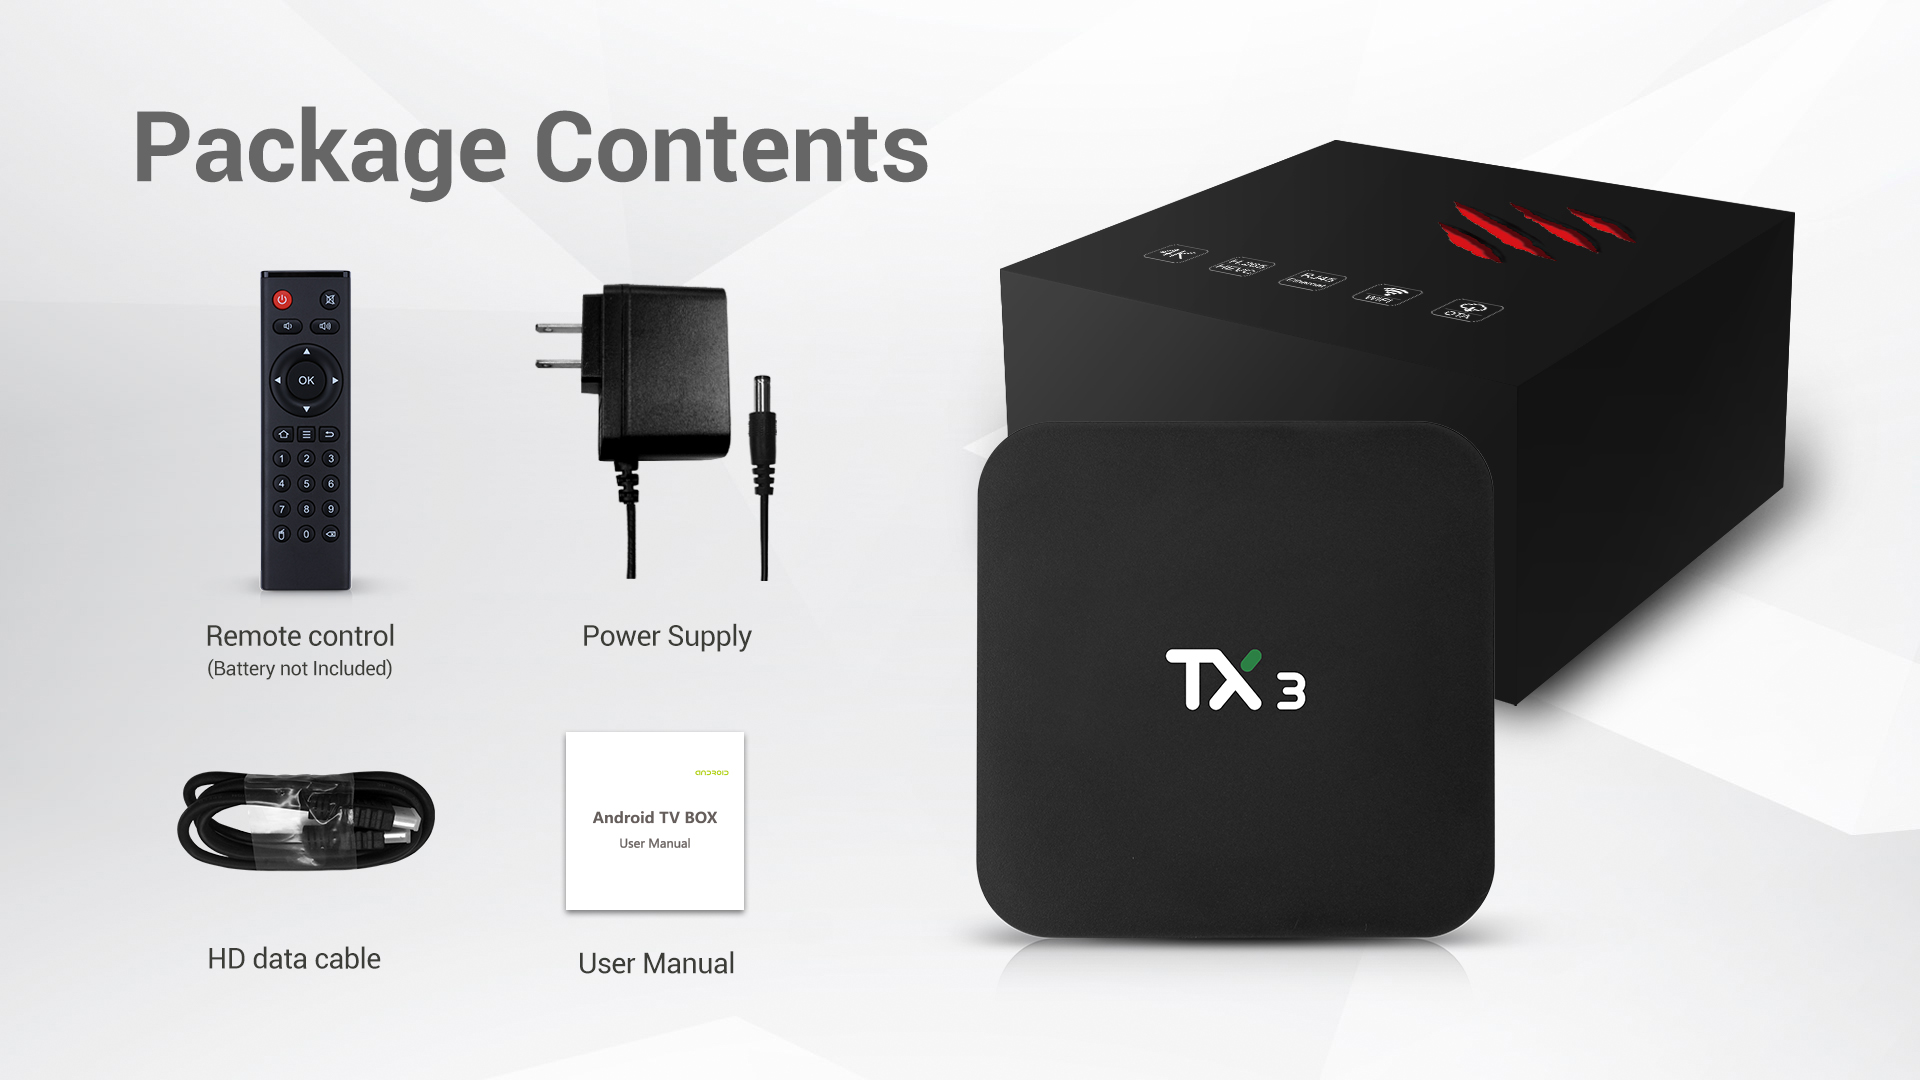 Tanix TX3 S905X3 4GB RAM 64GB ROM 2.4G 5G WiFi Android 9.0 4K 8K TV Box Support Voice Control